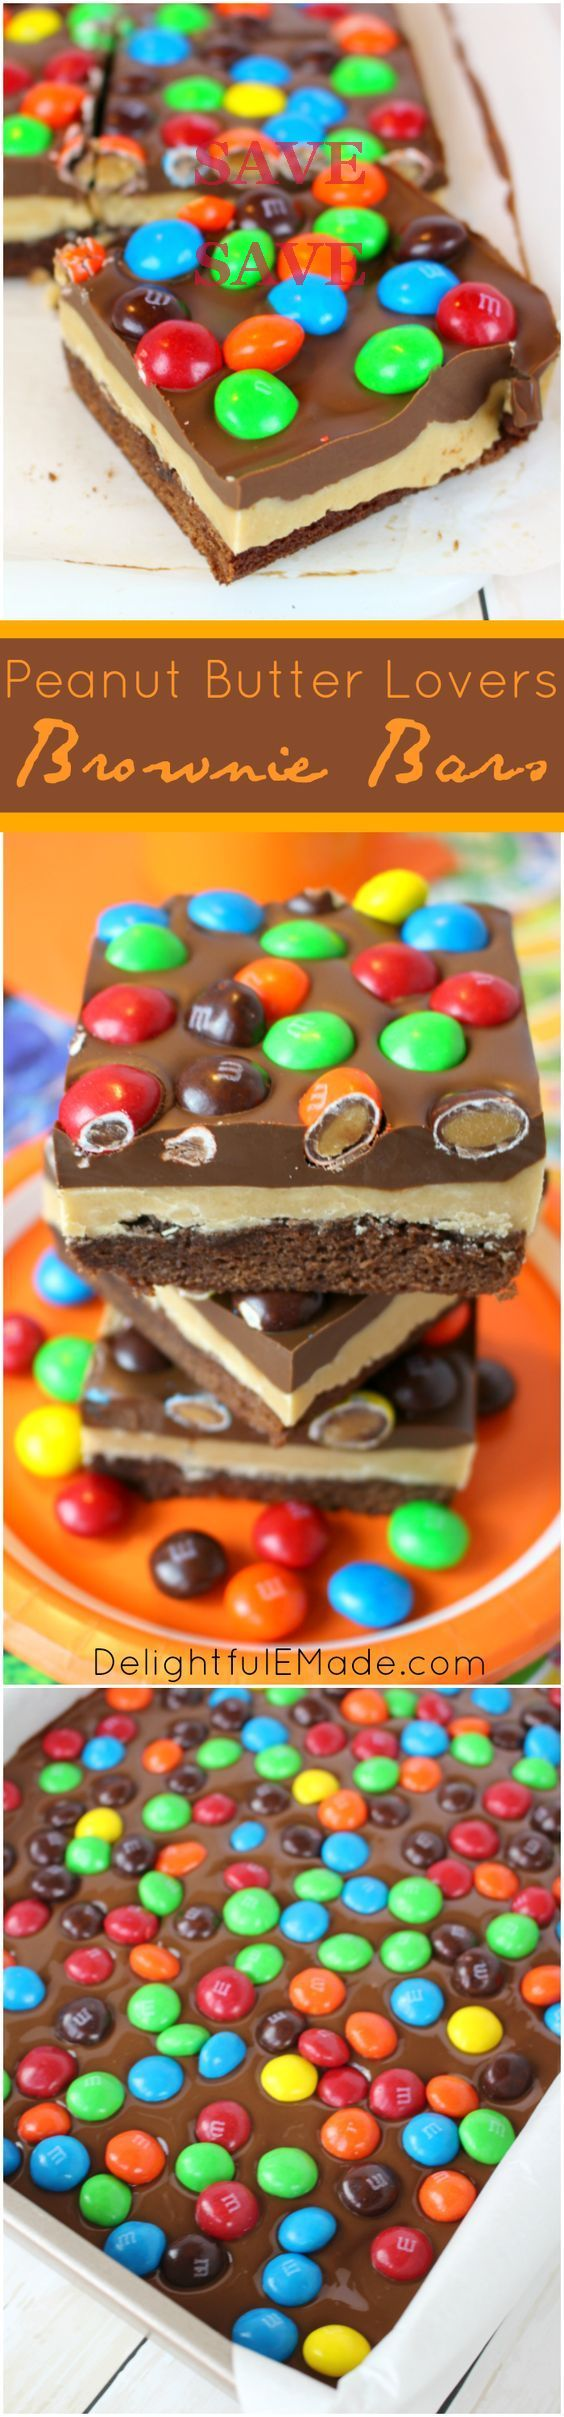 If you're a chocolate and peanut butter lover, these brownies are for you!  Rich, fudgy brownies are layered with peanut butter filling, a chocolate peanut butter ganache and topped with Peanut Butter M&M's® candies!  The perfect treat for family game night, or anytime you're in the mood for a chocolate and peanut butter treat! #ad #GameNightIn